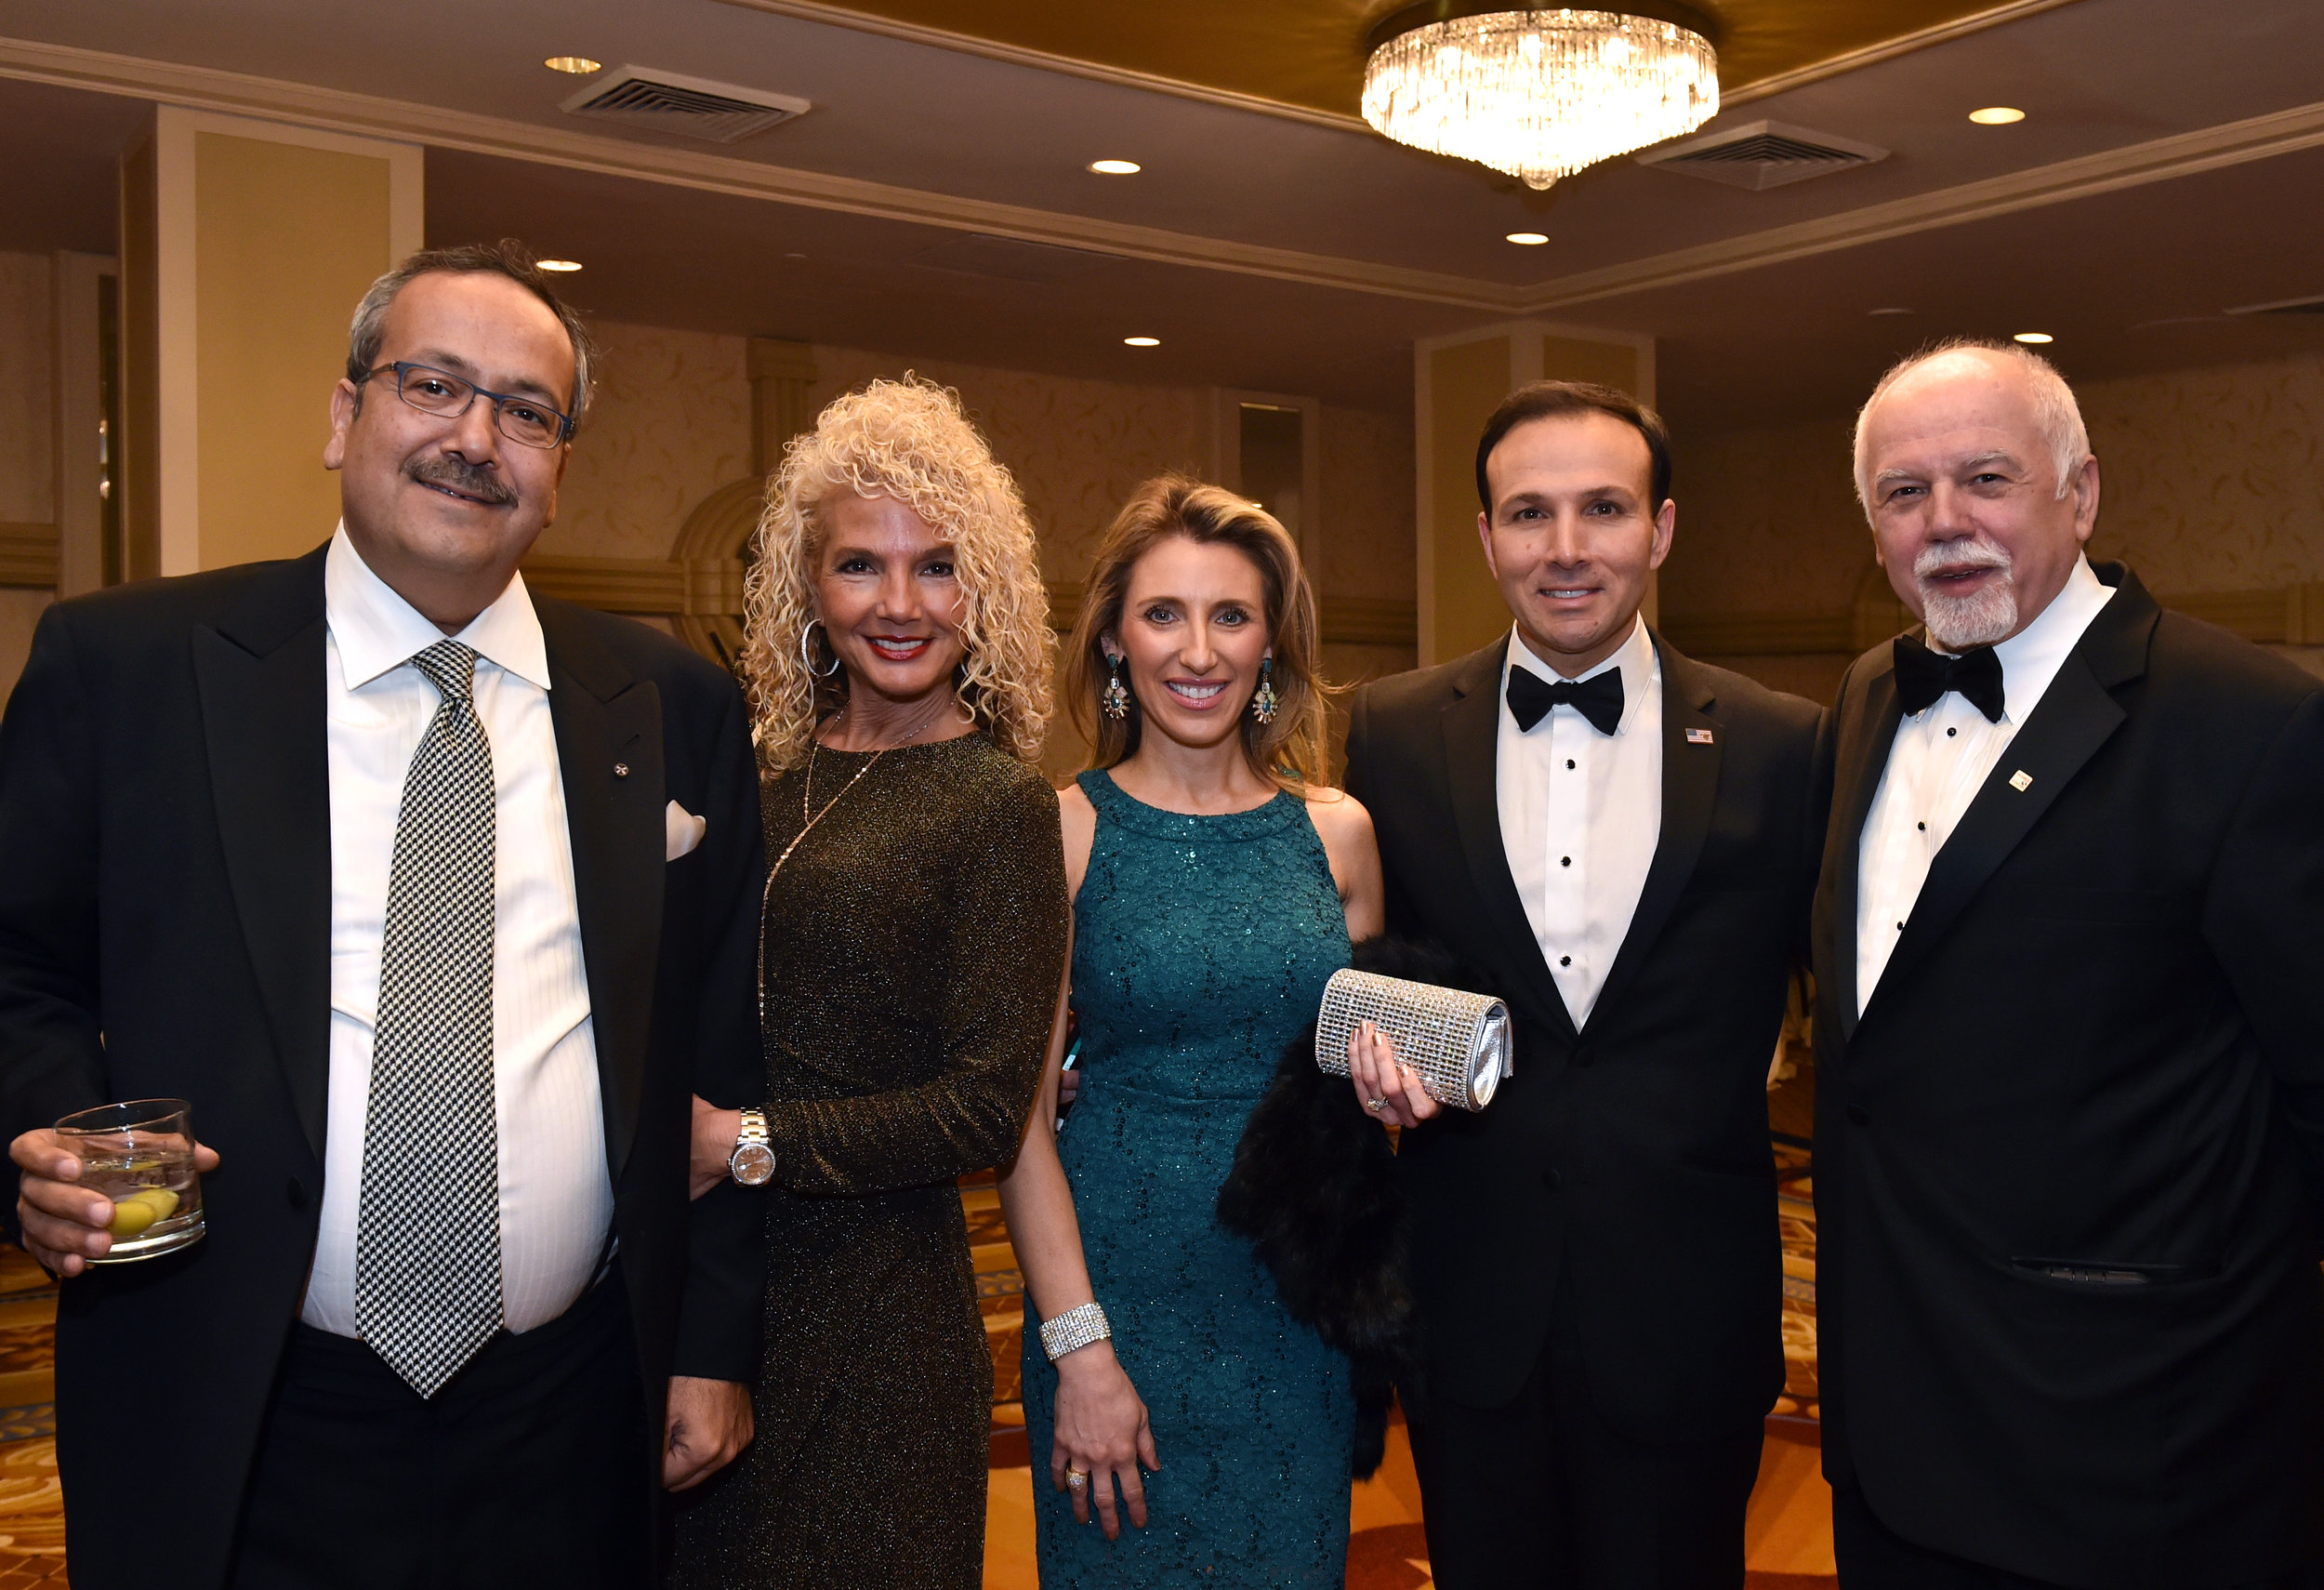 From left: Dr. Spiro Spireas, Dr. Emily Spireas, Adriana Sifakis, George Sifakis, and Paul Kotrotsios